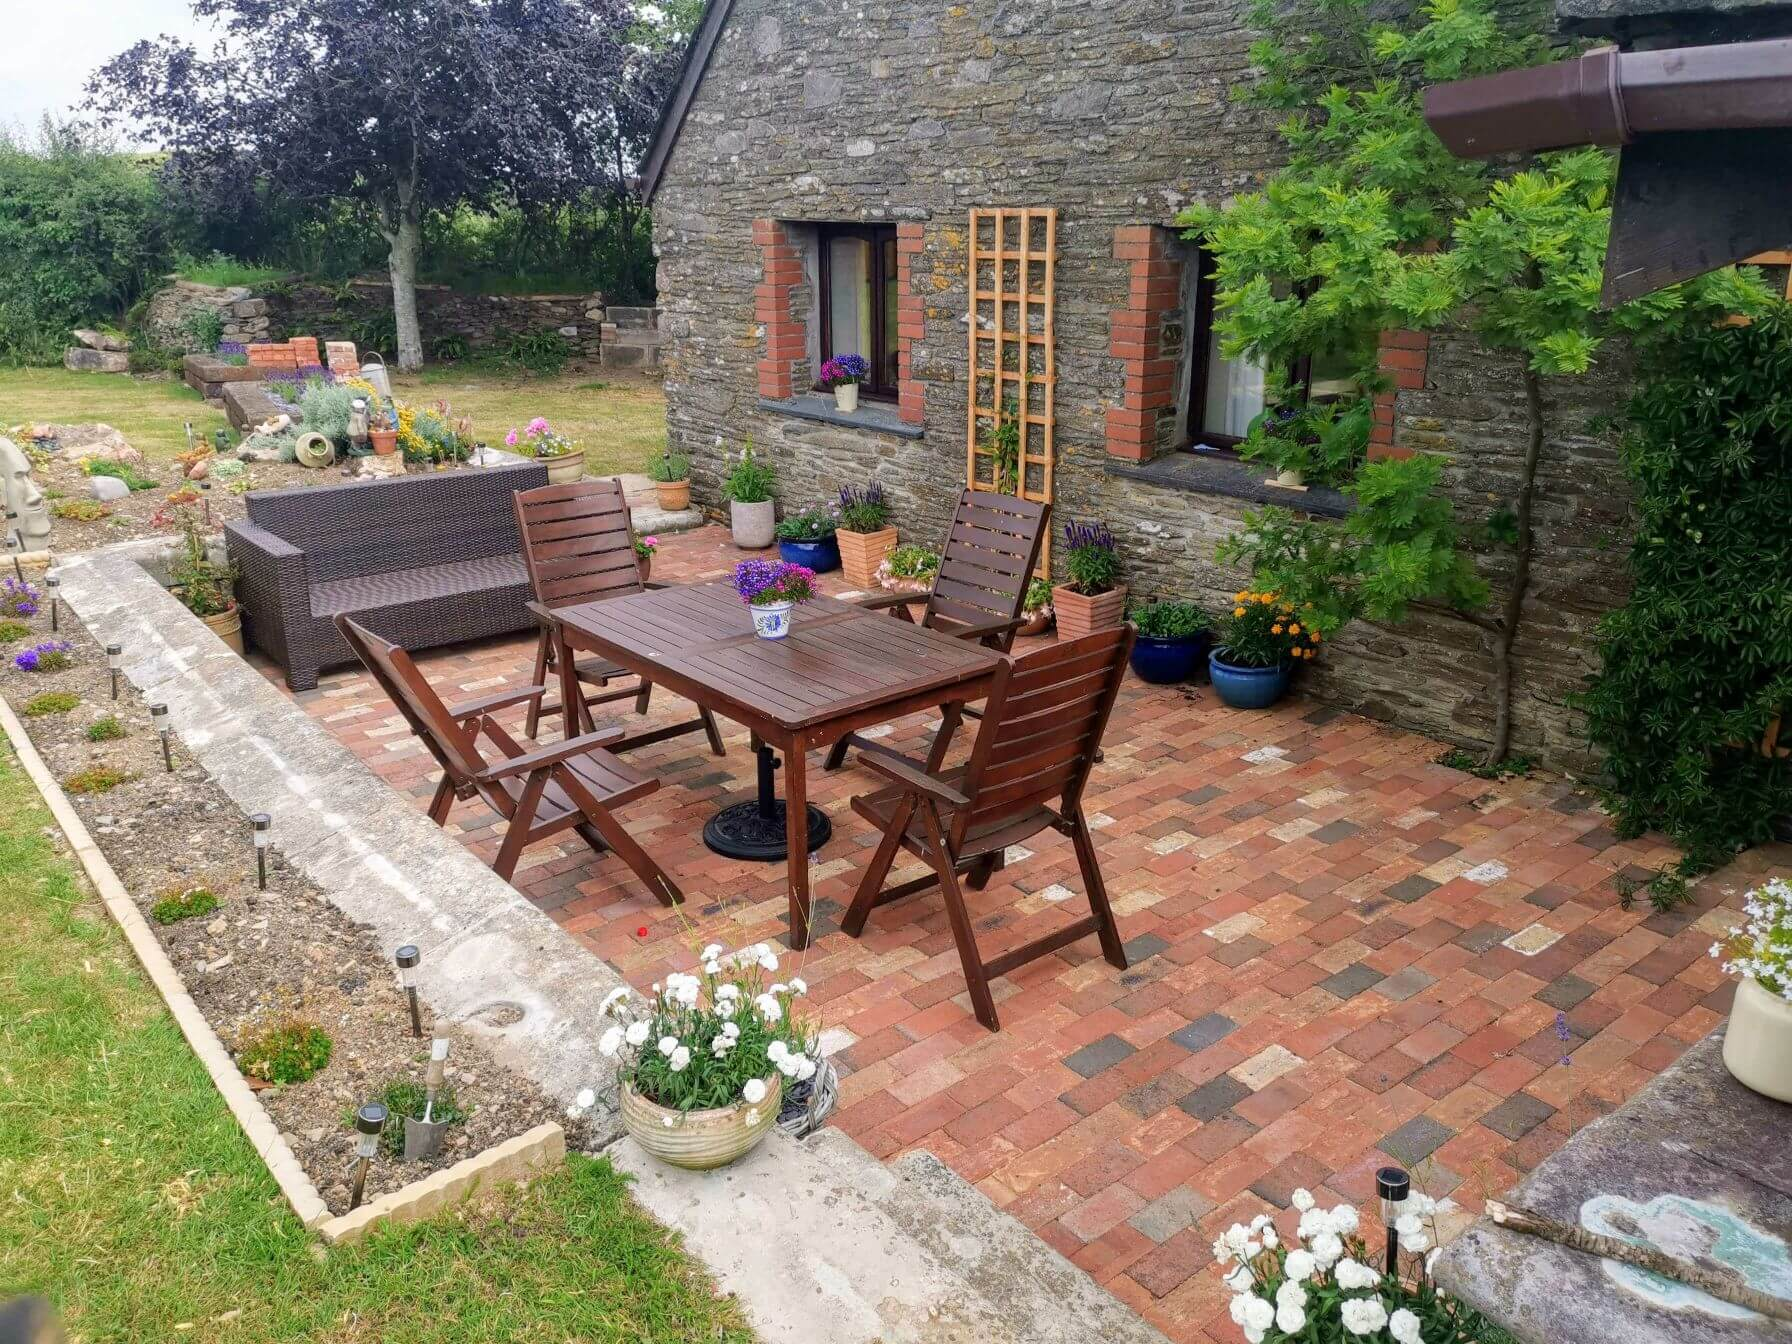 Landscaping Services Plymouth - Image of a garden following a makeover from Jackson Garden Services, featuring wooden garden furniture, flower beds, colourful plants and shrubs